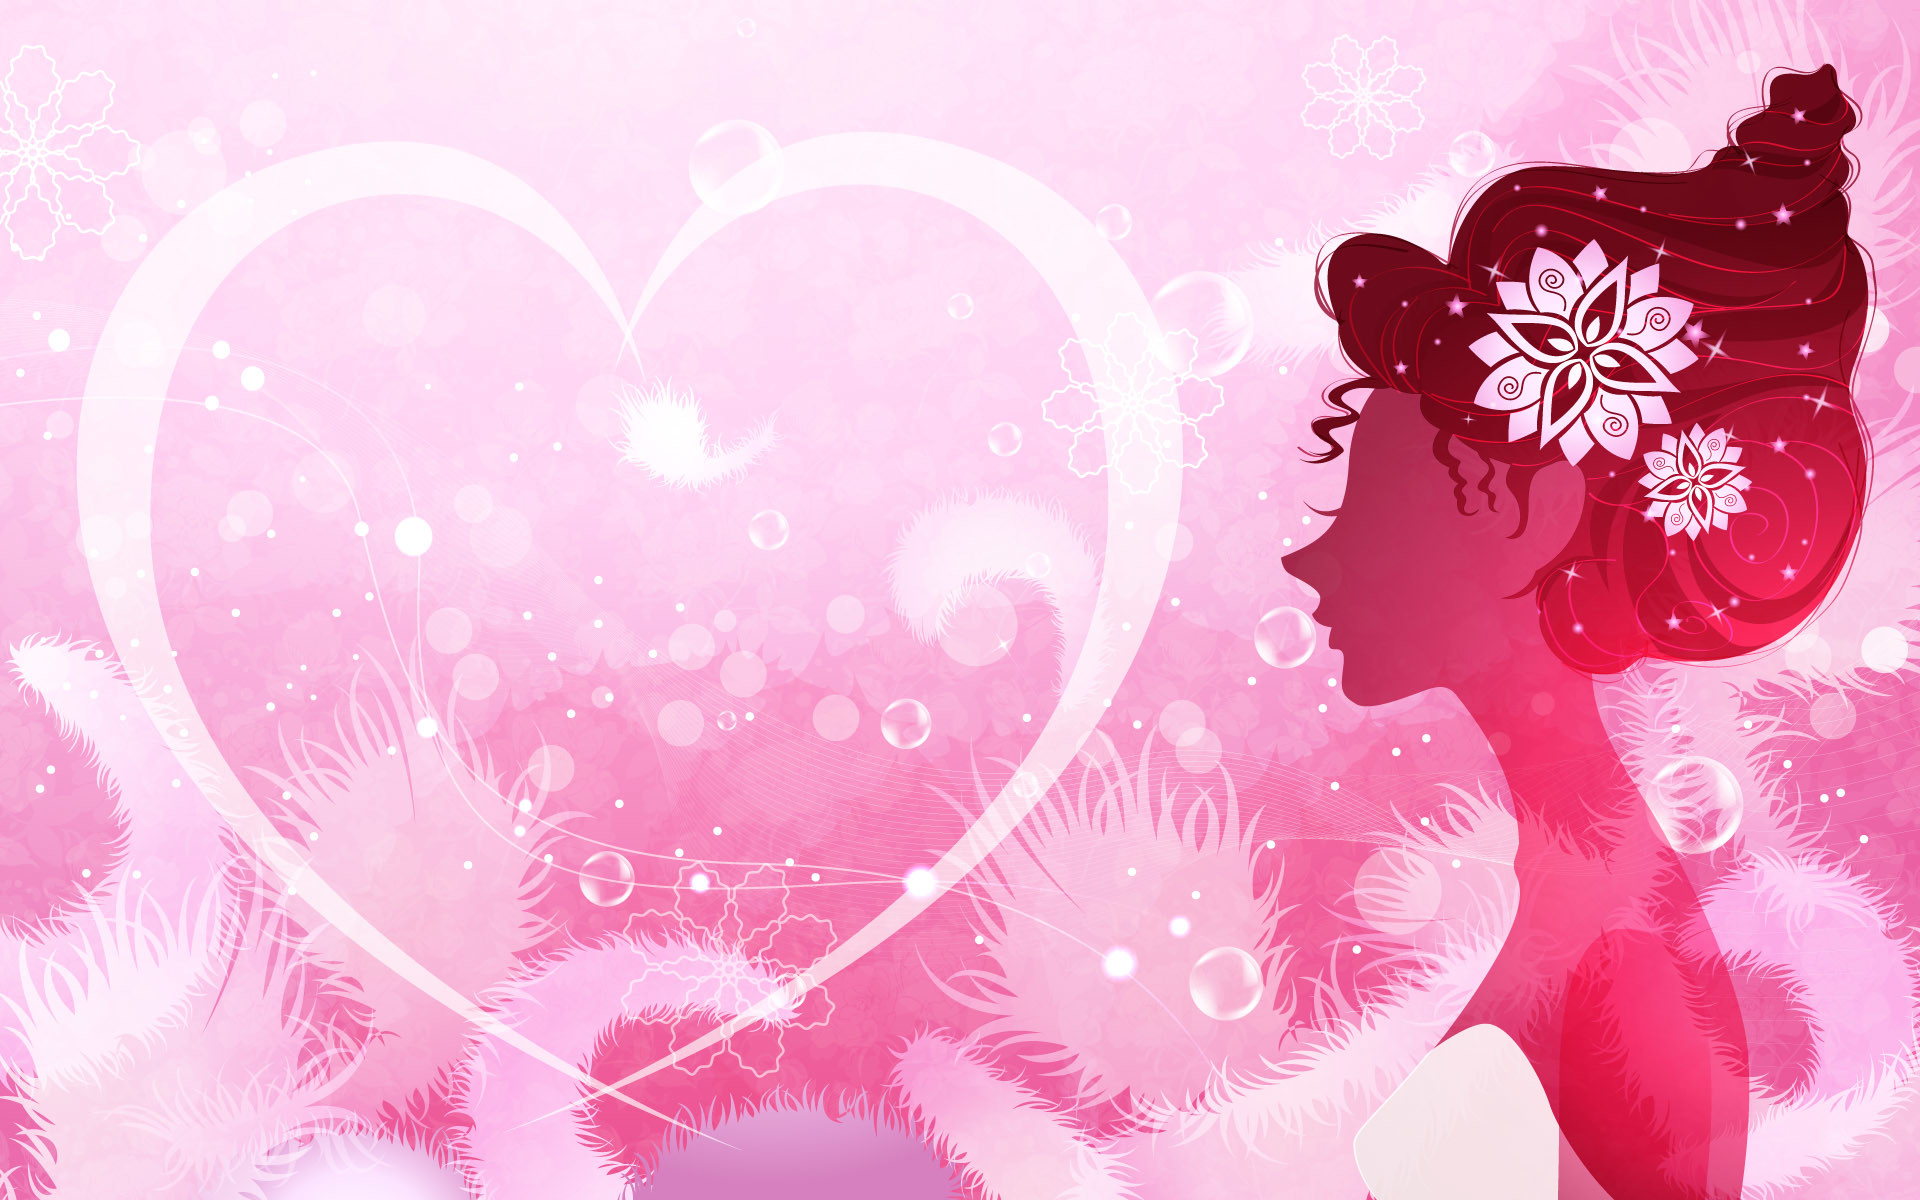 Cute girly wallpapers for laptop 64 images - Pretty laptop backgrounds ...